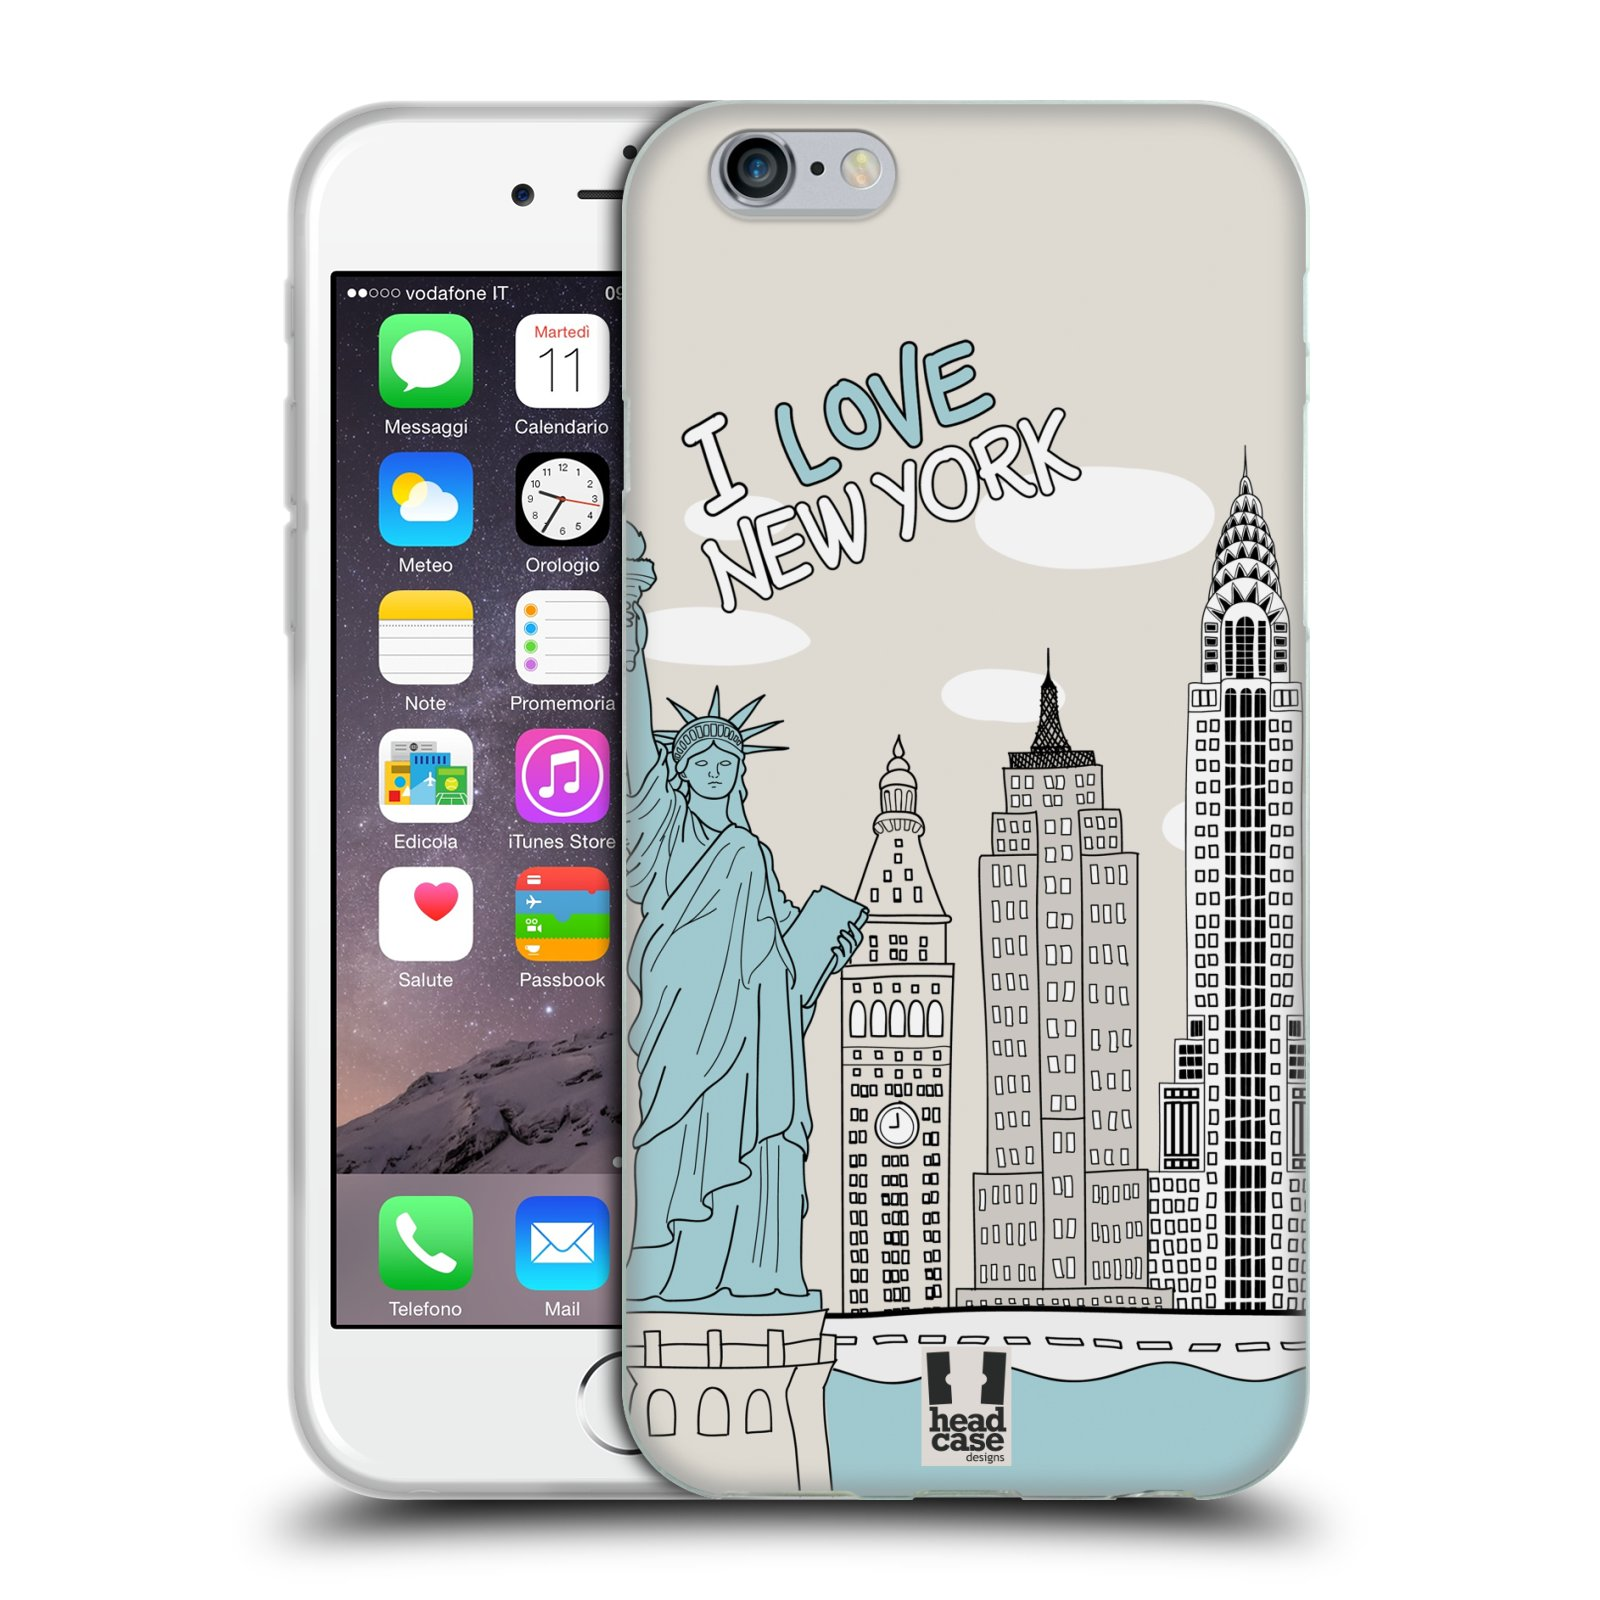 HEAD CASE silikonový obal na mobil Apple Iphone 6/6S vzor Kreslená městečka MODRÁ, USA, New York, I LOVE NEW YORK